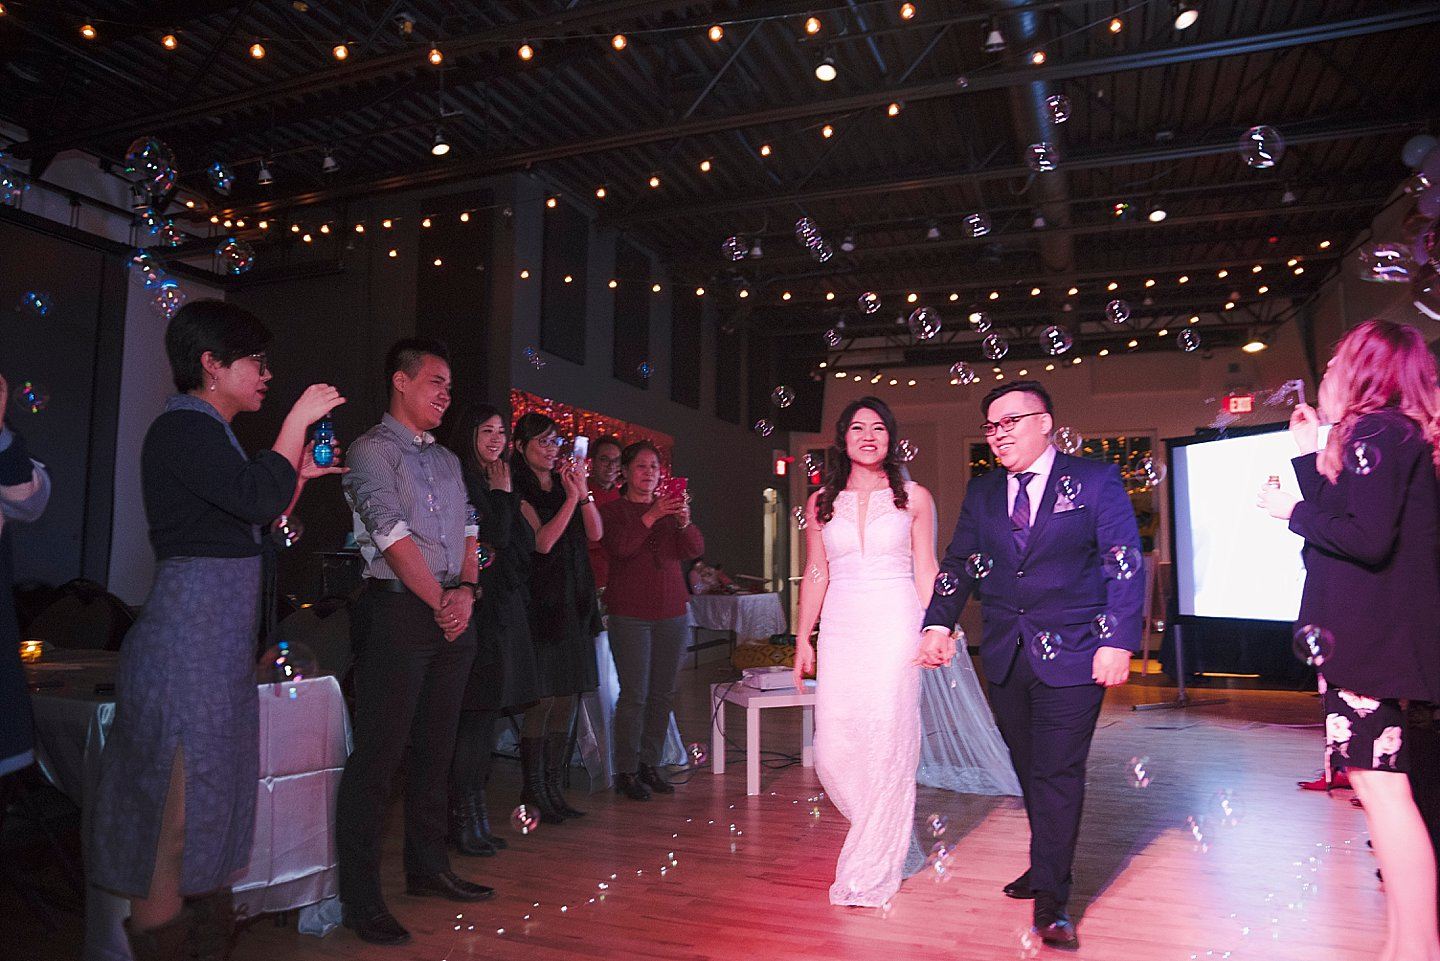 VJ Sugar-Swing-wedding-party_0000